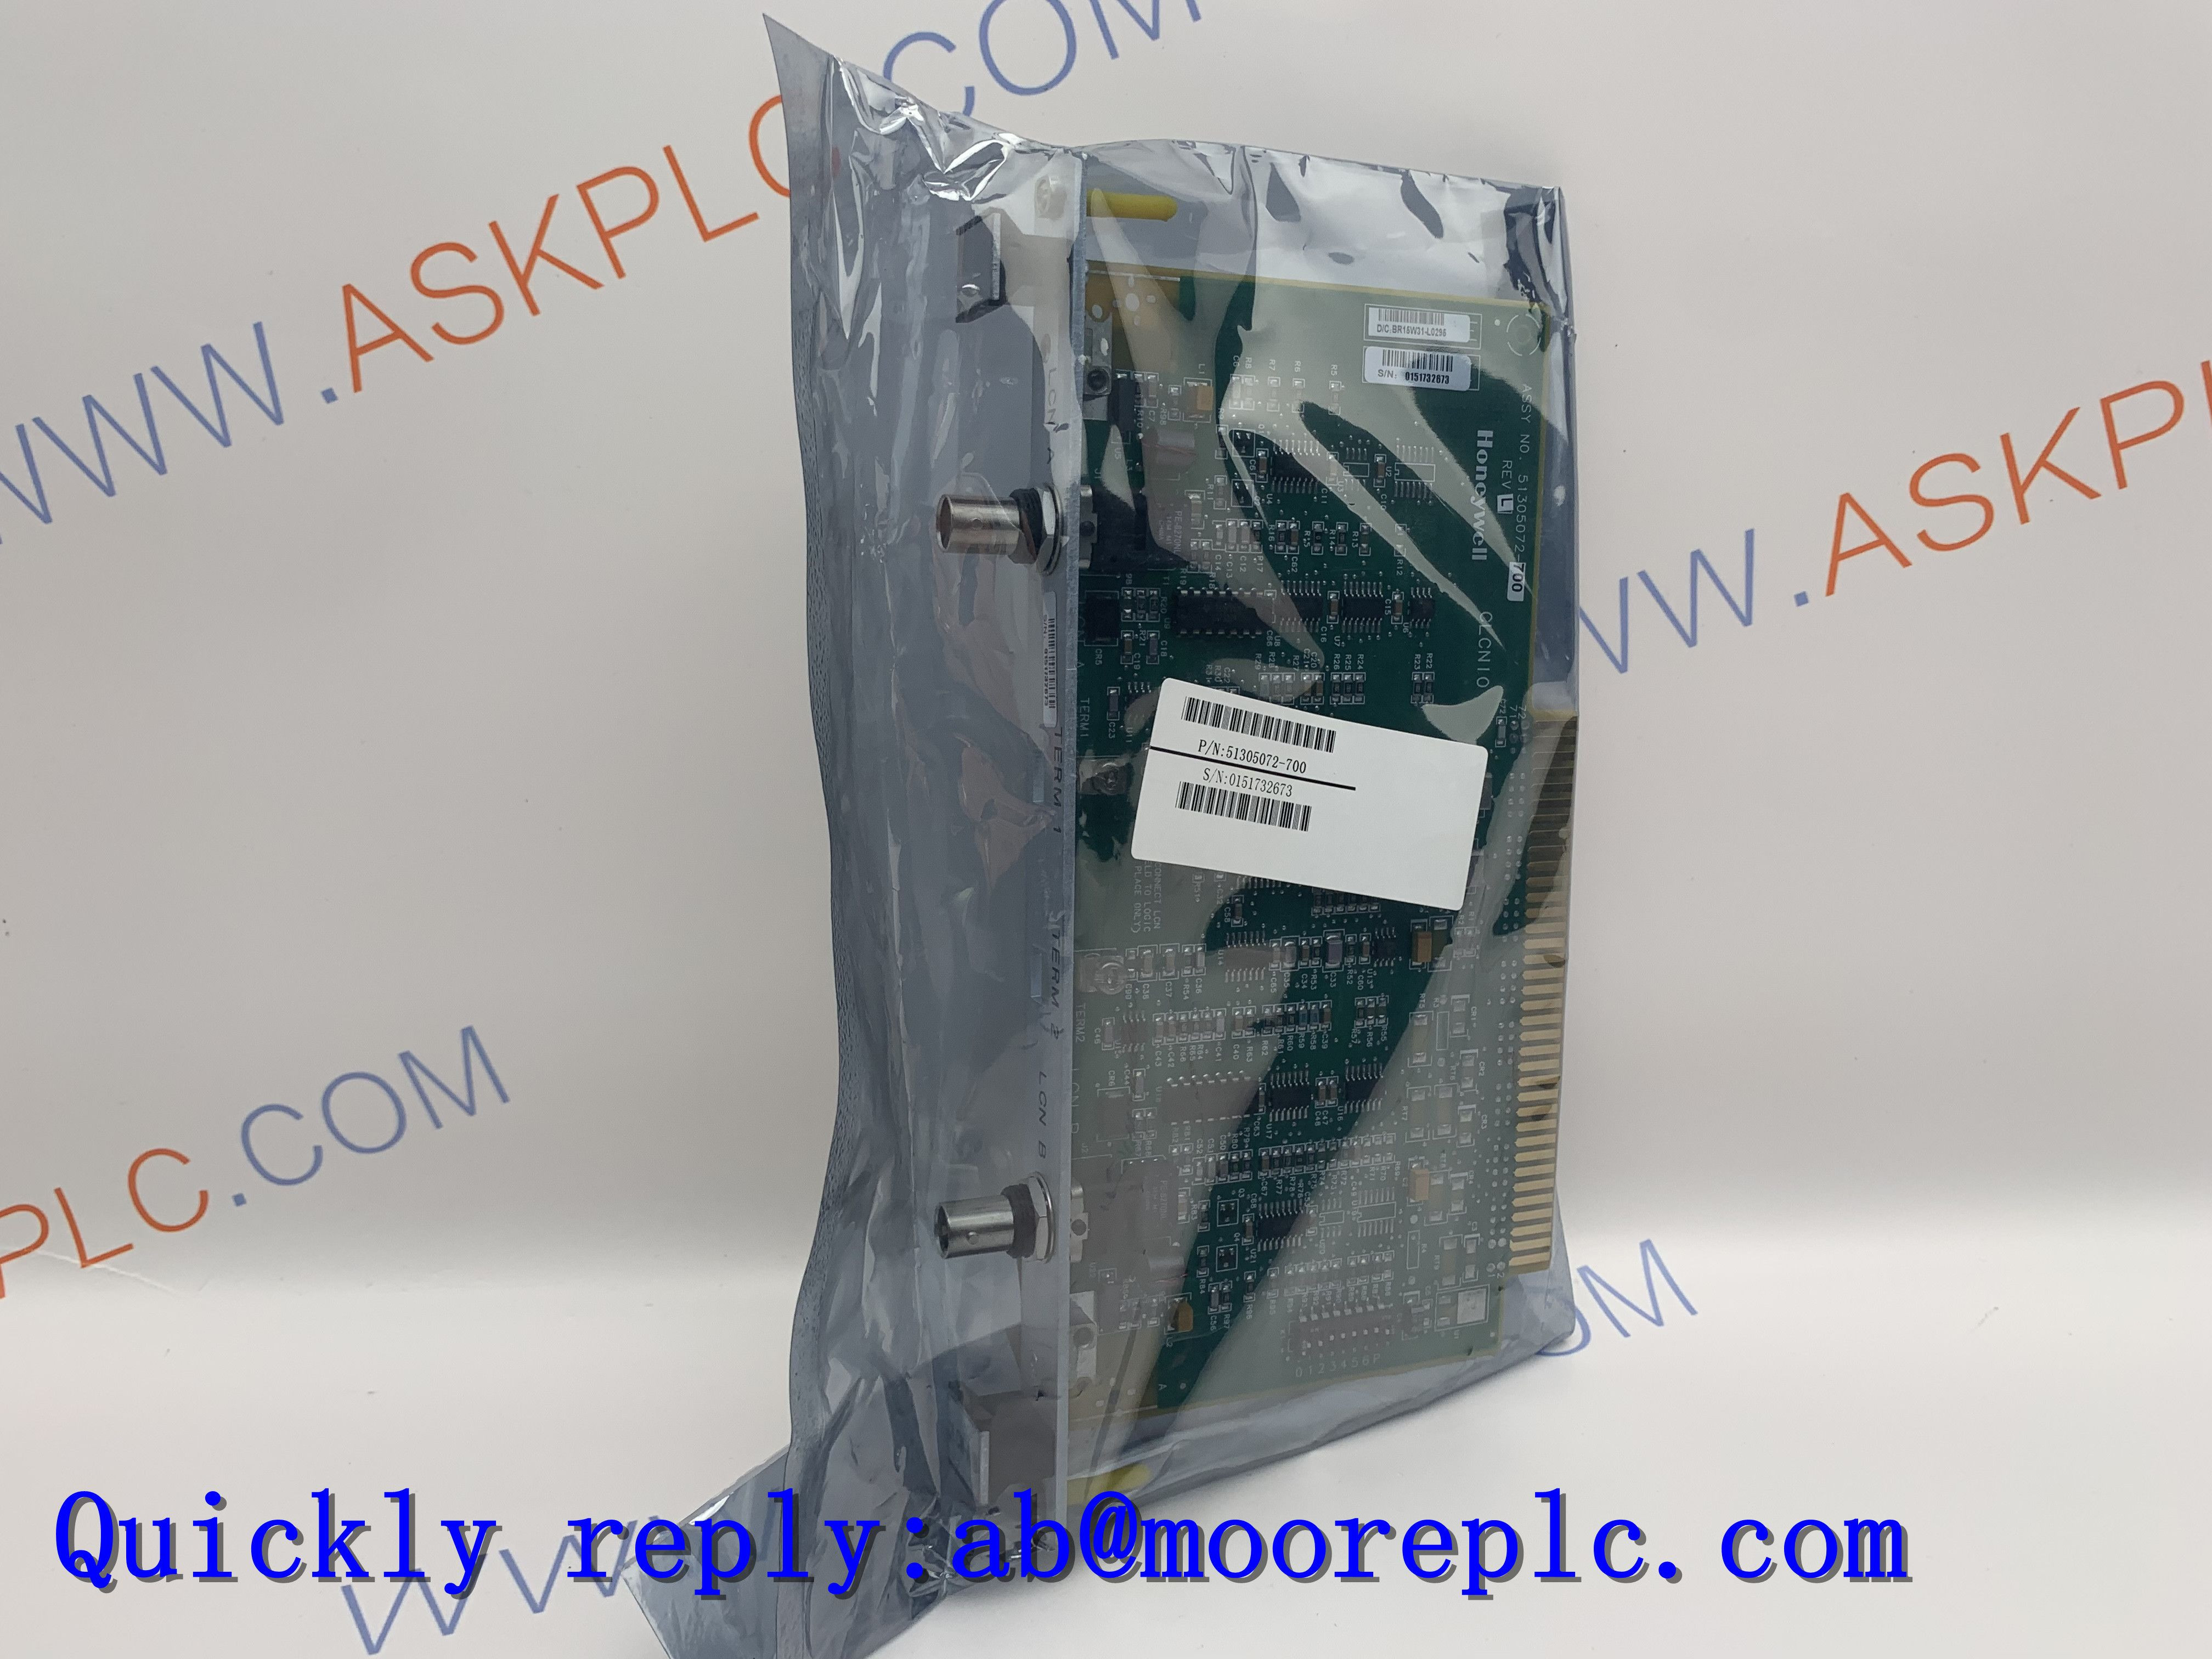 6DD1607-0AA2 SIEMENS FM458-1 DP Application Module*IN STOCK*